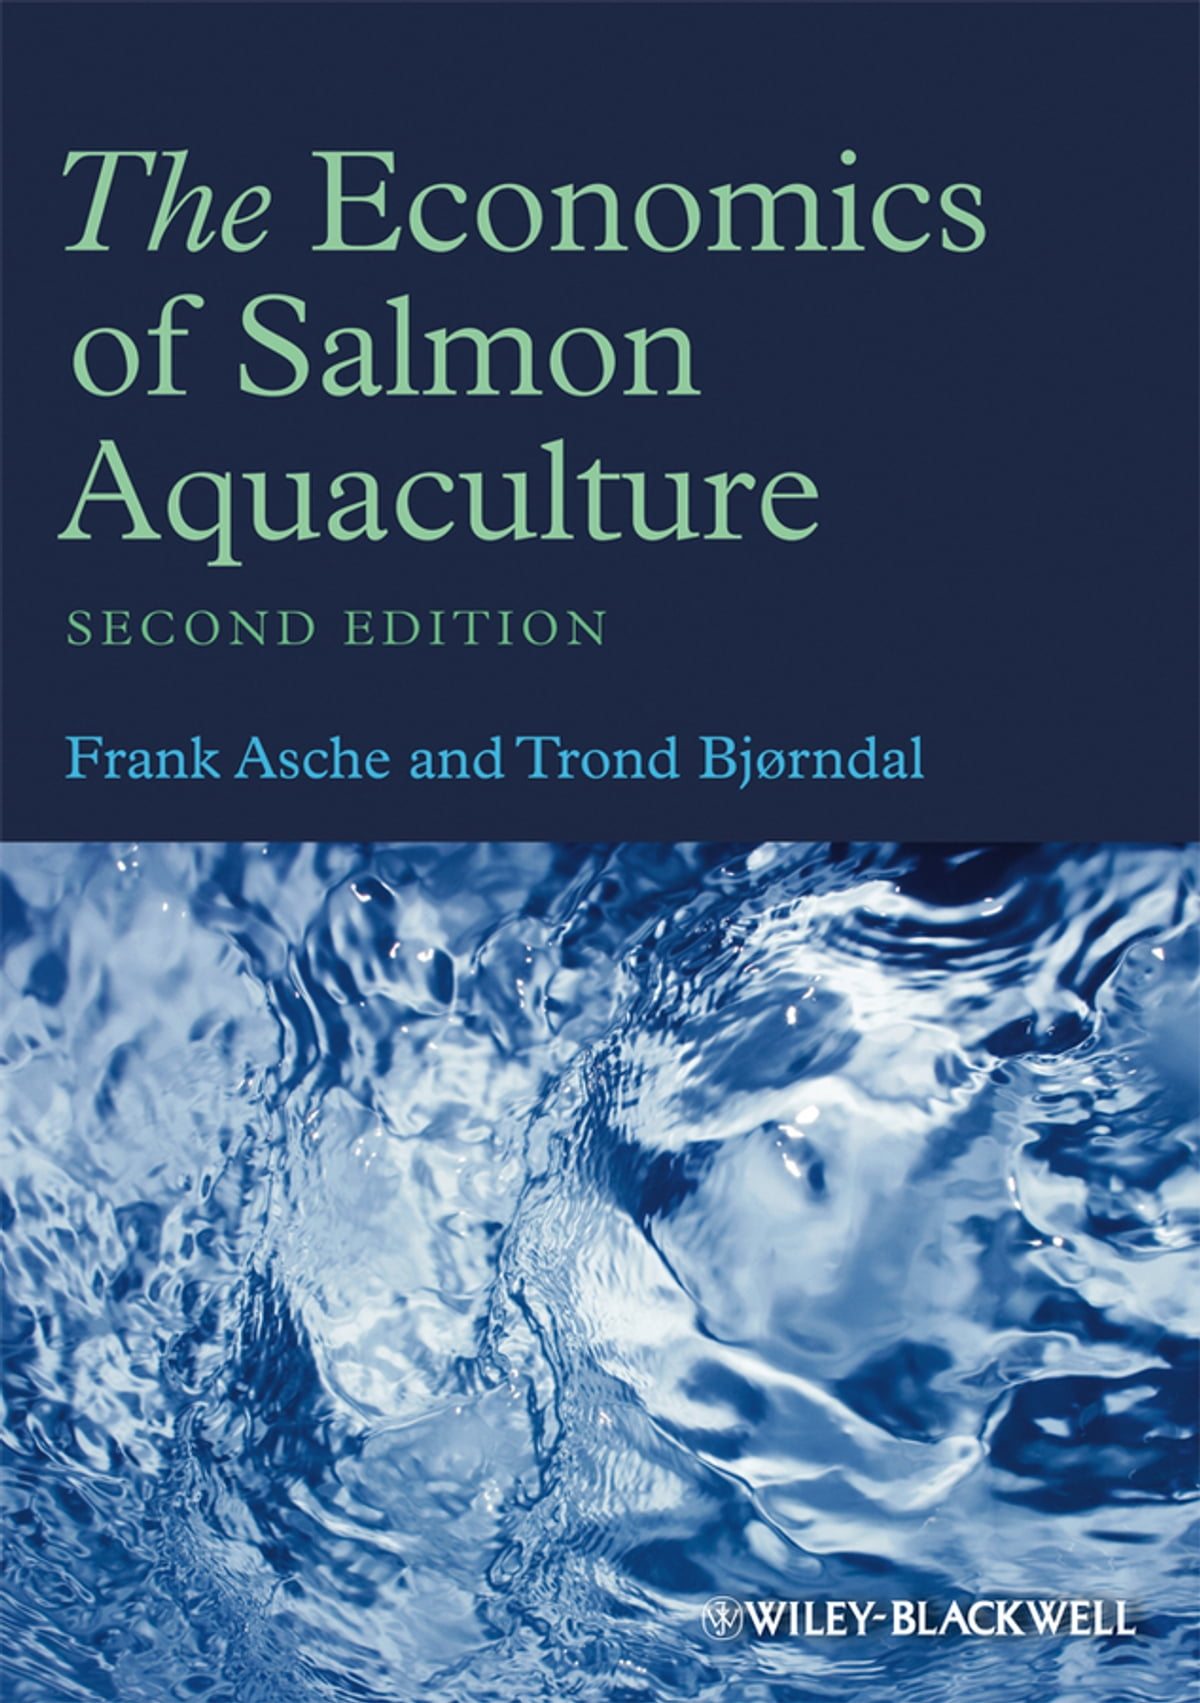 The economics of salmon aquaculture ebook by frank asche the economics of salmon aquaculture ebook by frank asche 9781119993377 rakuten kobo fandeluxe Image collections